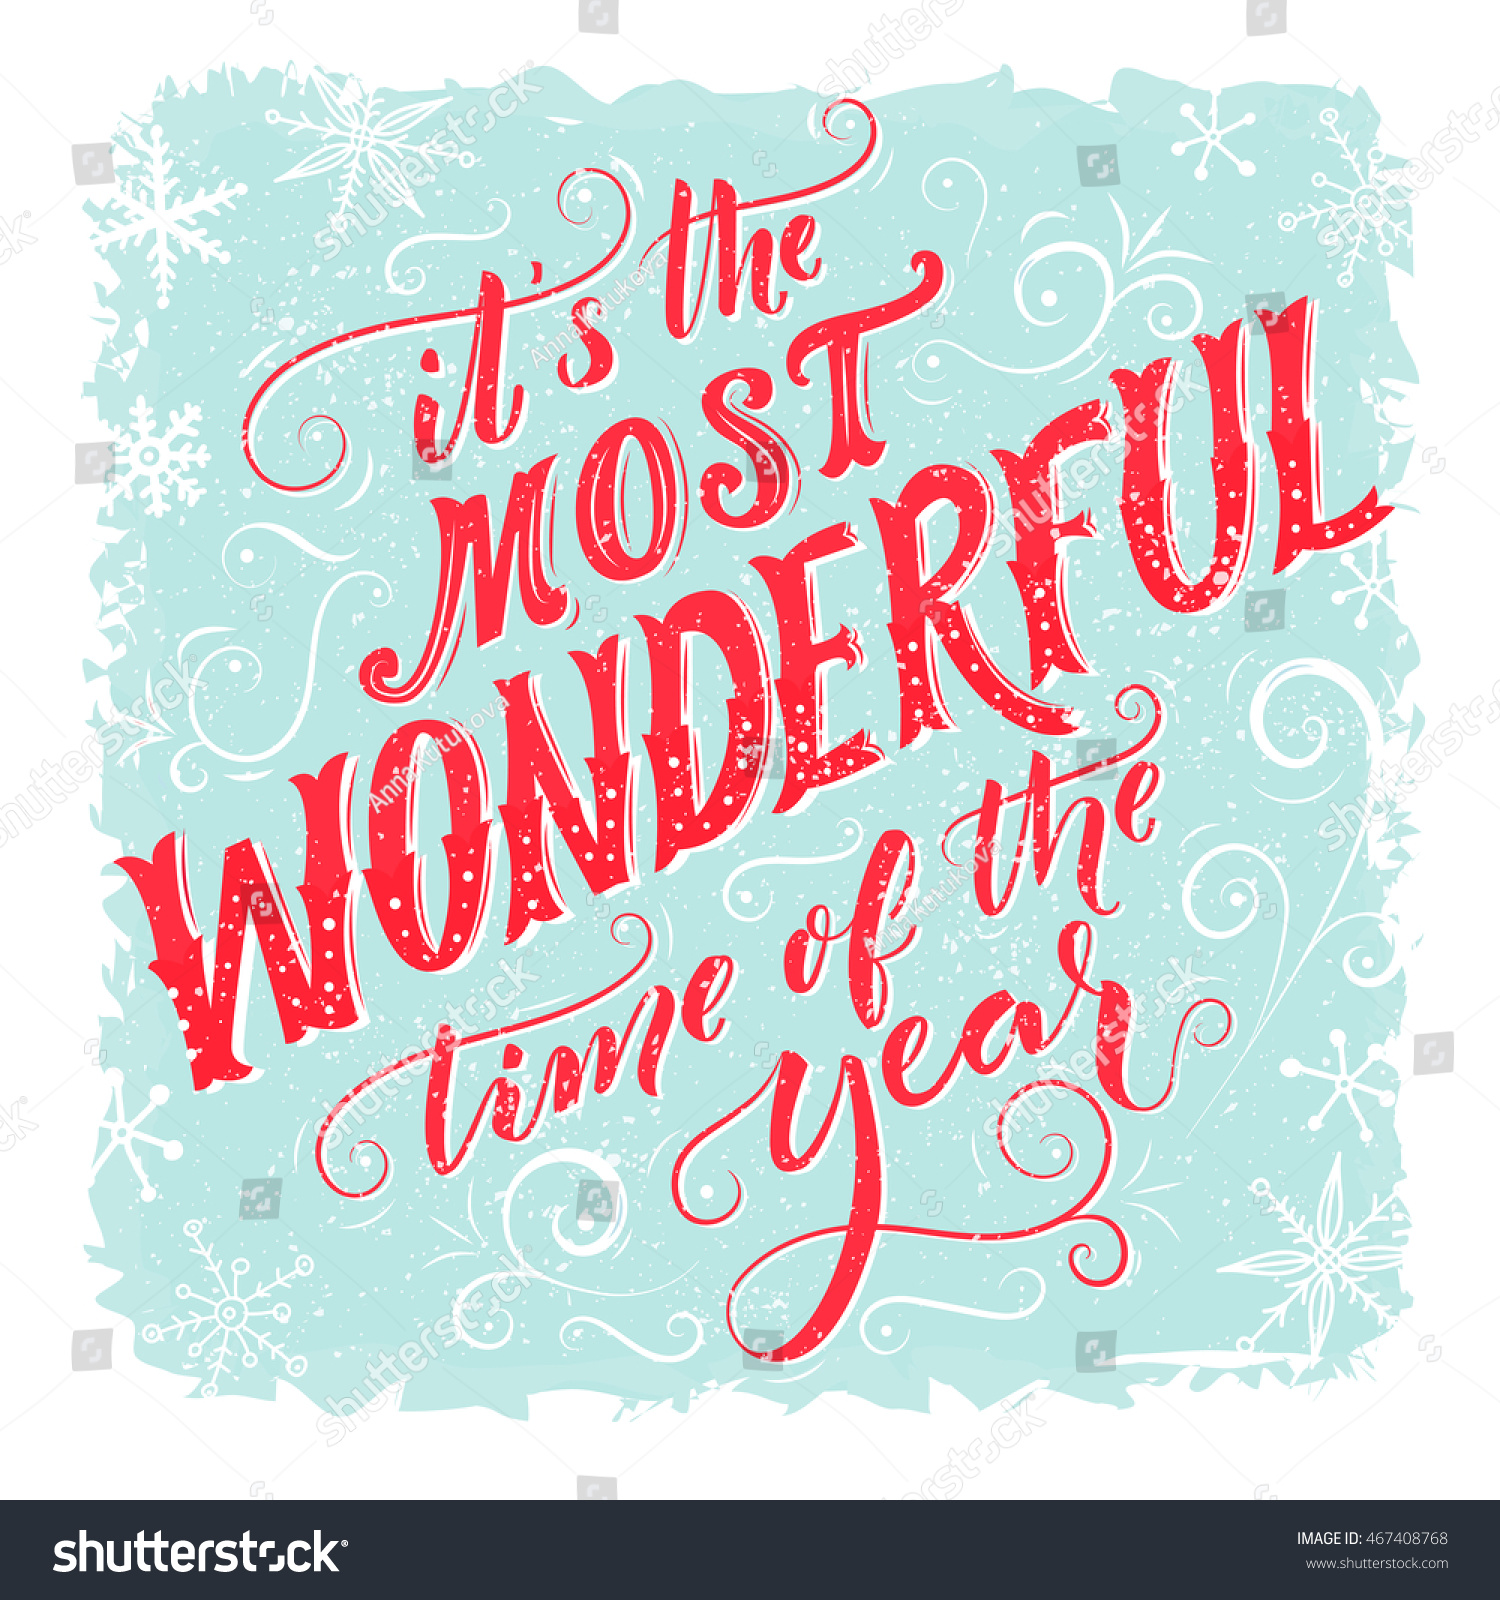 Most Wonderful Time Year Vintage Greeting Stock Vector Royalty Free 467408768